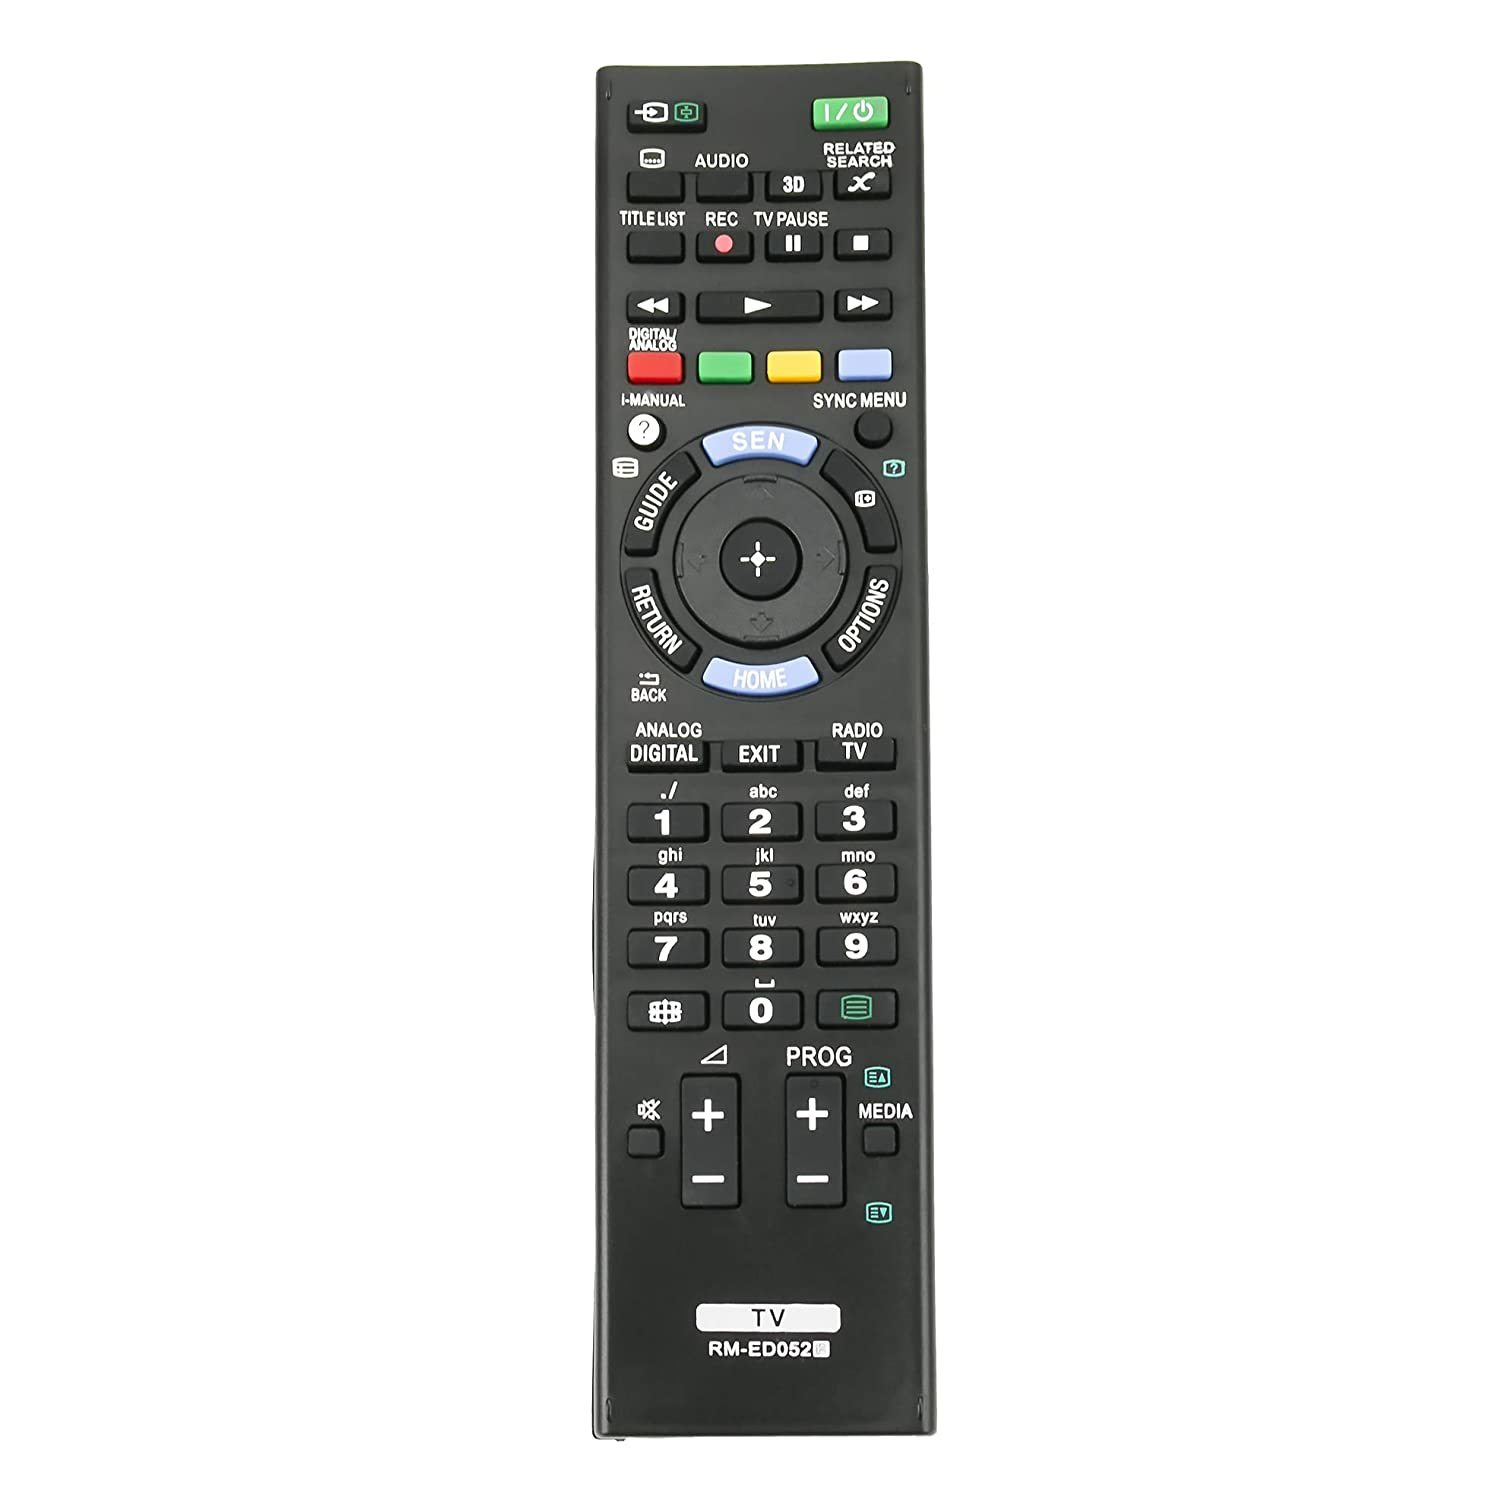 rm-ed052 replaced remote fit for sony tv remote rm-ed050 rm-ed053 rm-ed060 kdl-5 - $15.99